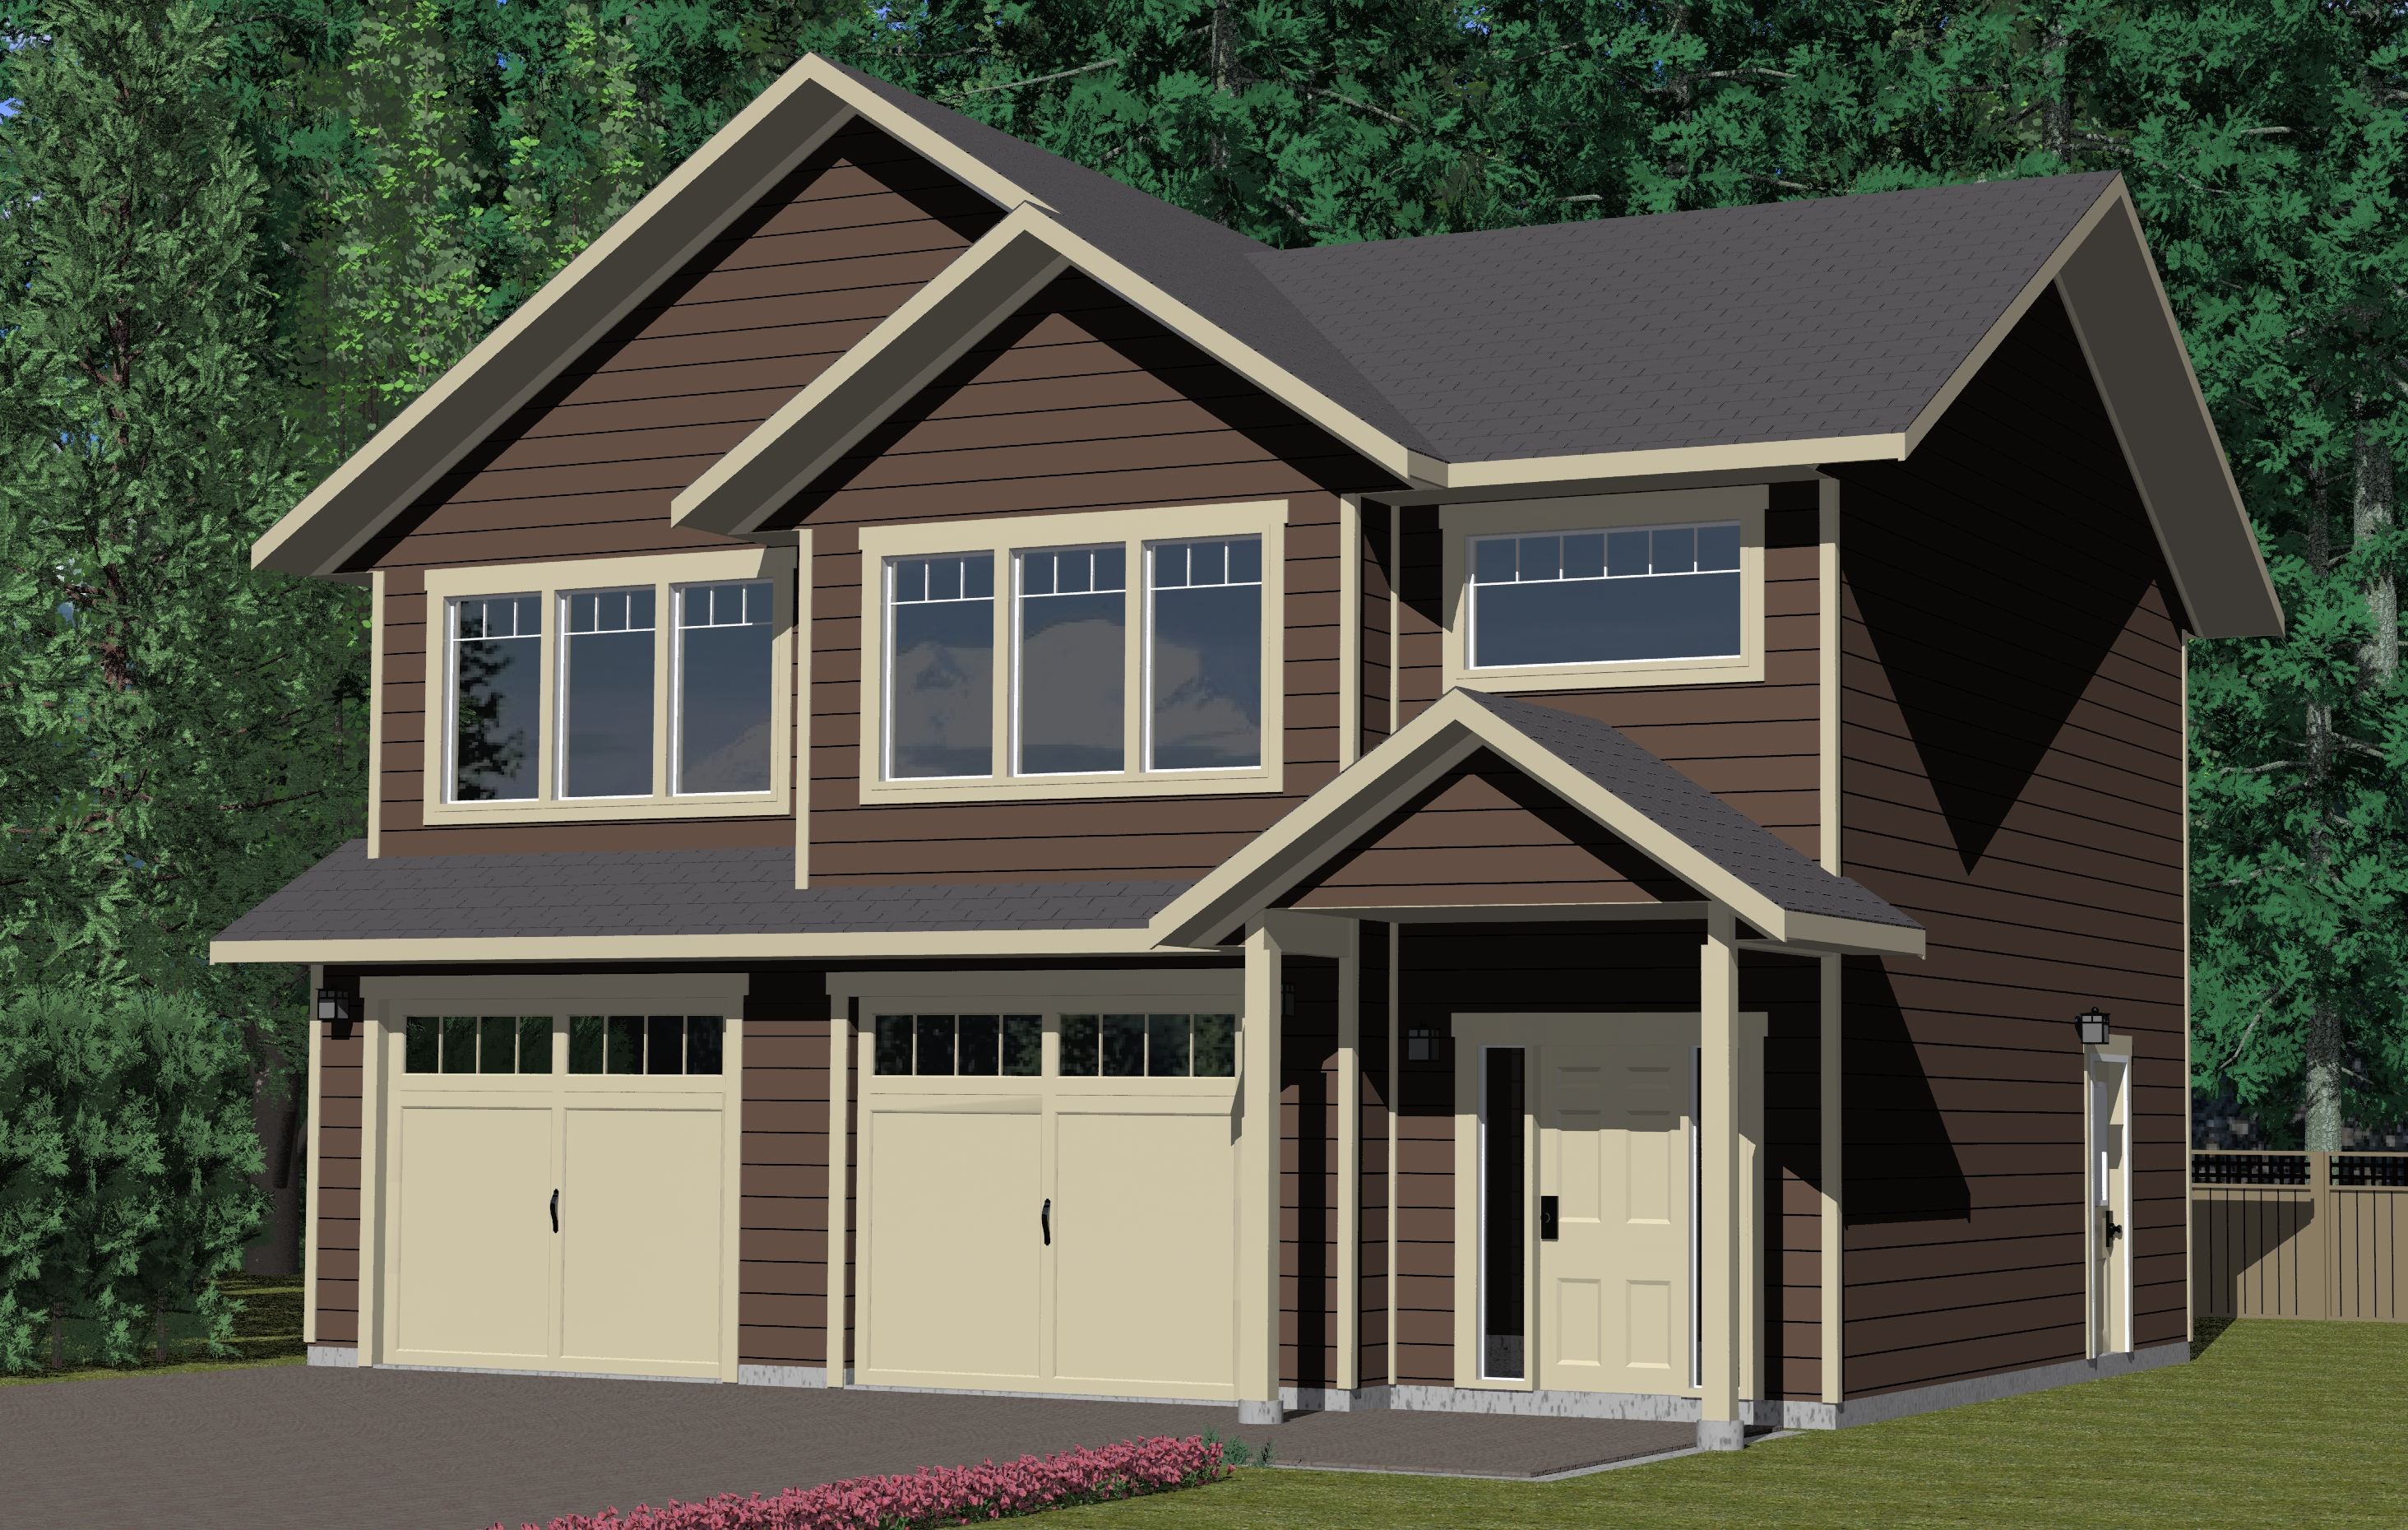 The tacheeda lake prefabricated home plans winton homes for Modular carriage house garage